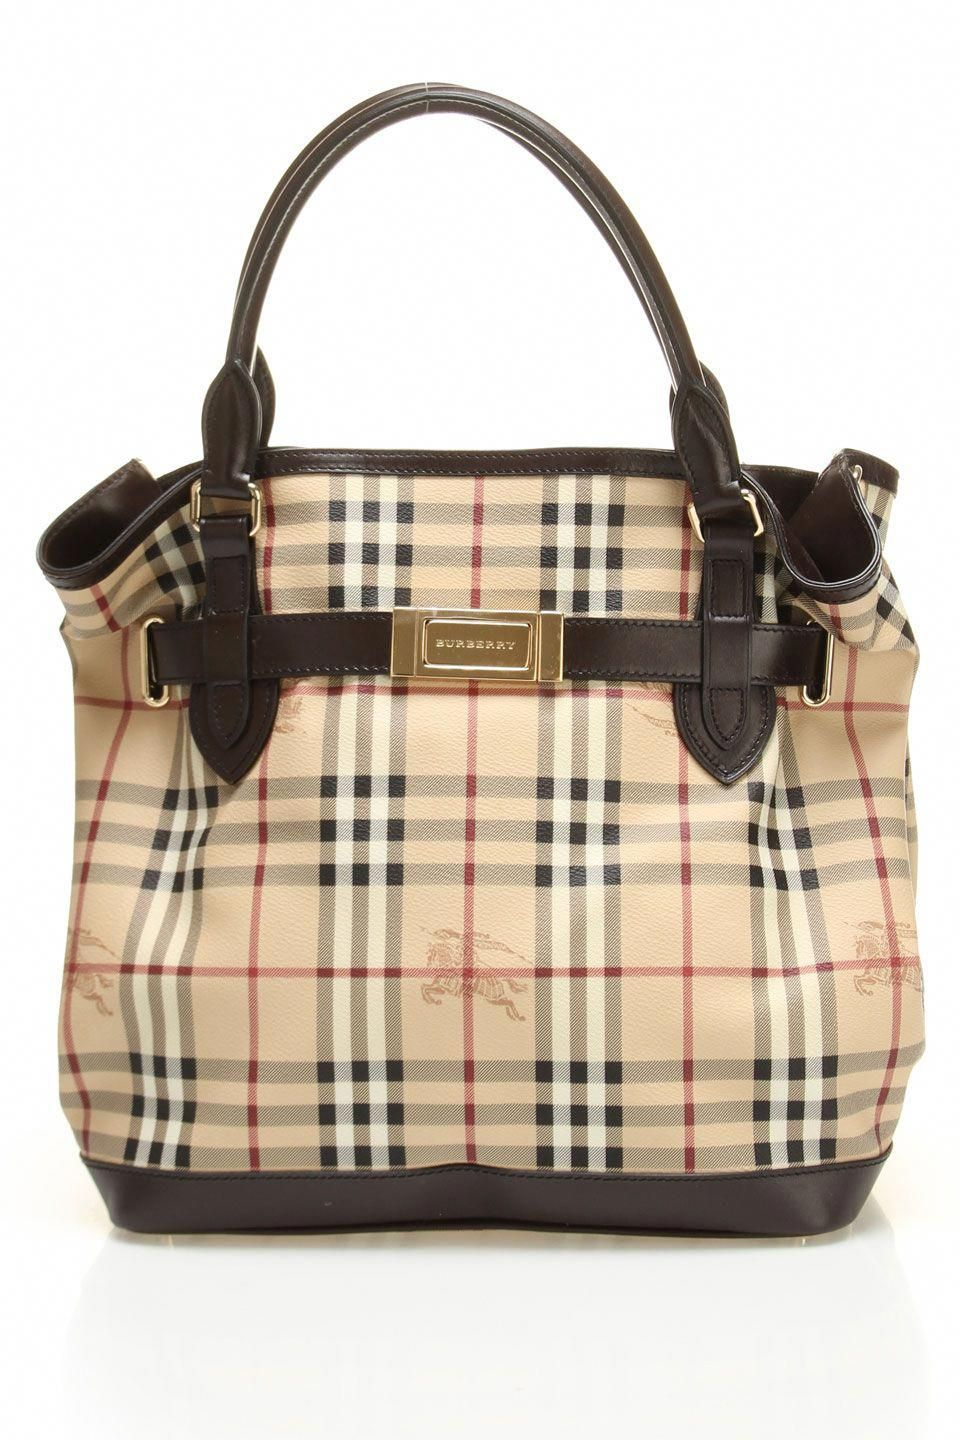 7032bb9c6b83 Burberry tote. It s one of those items